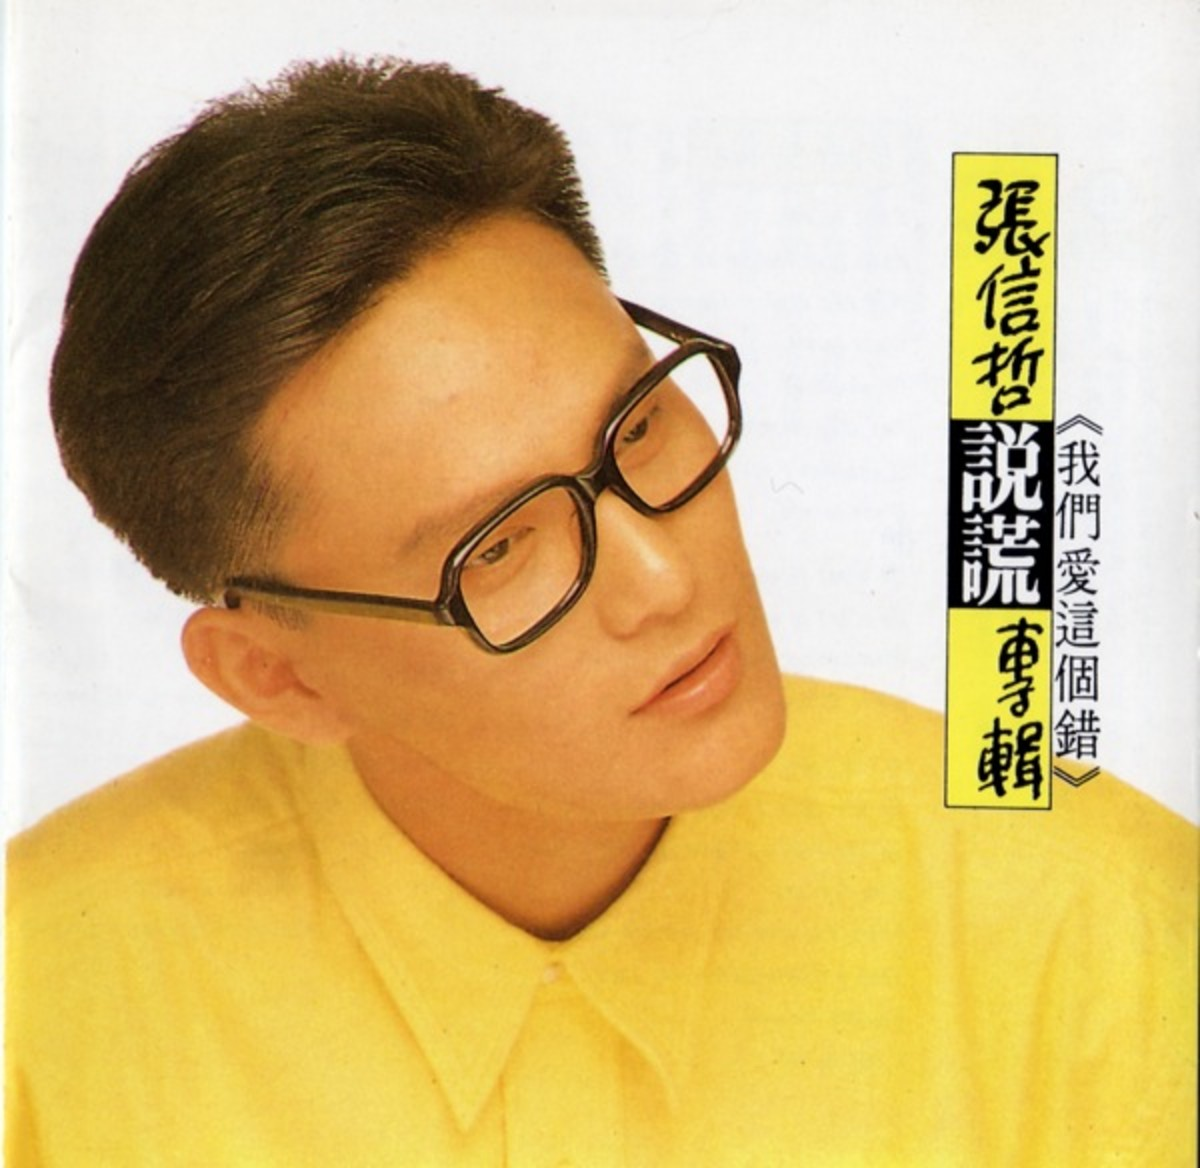 jeff-chang-s-discography